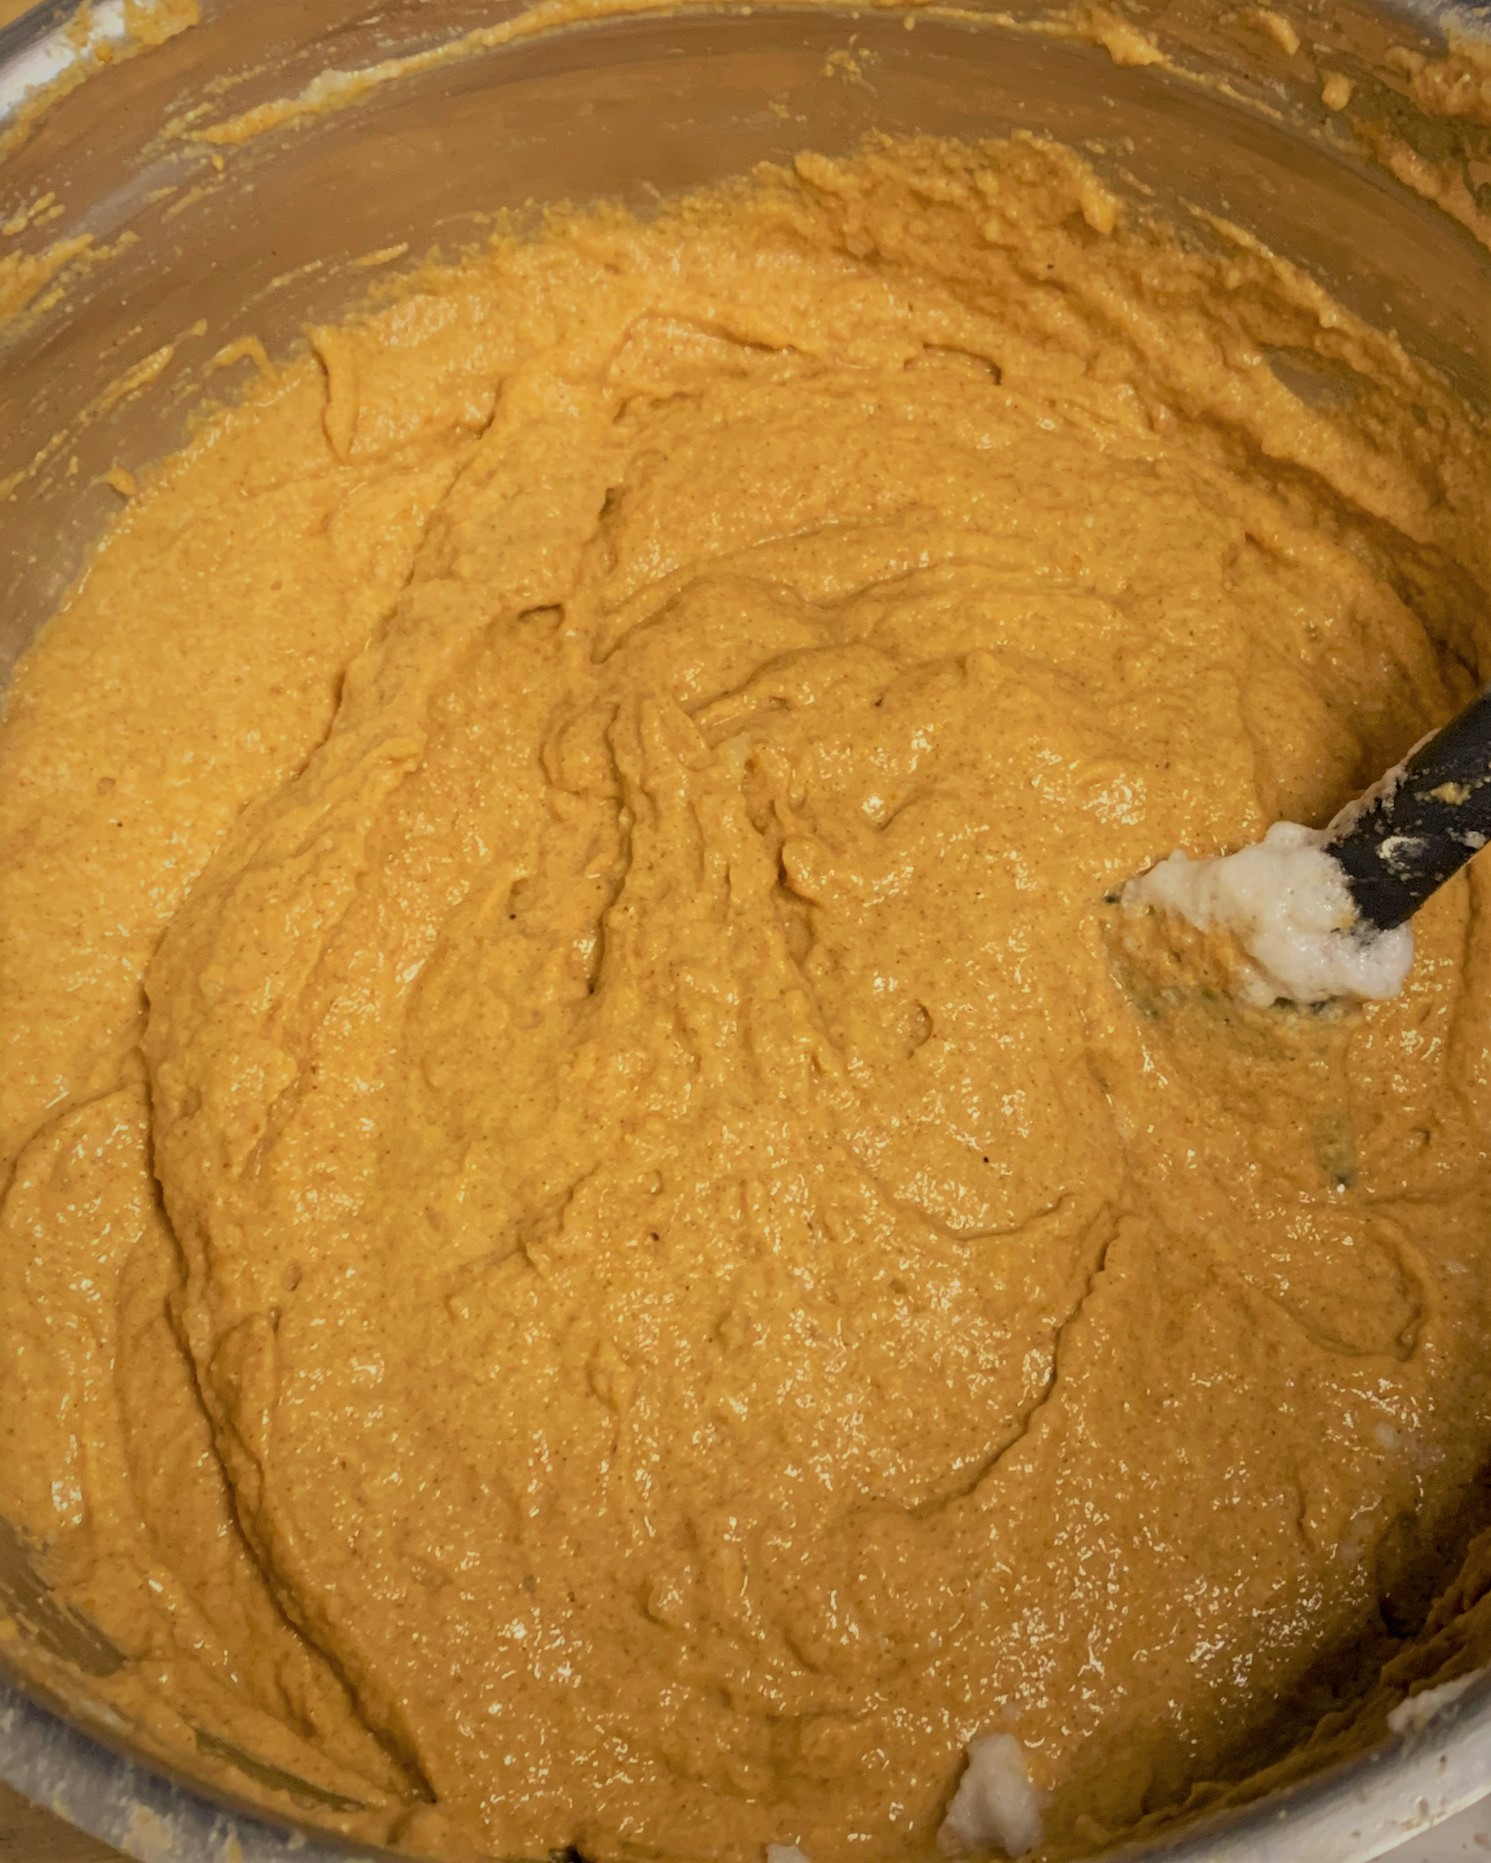 The completed batter for our Pumpkin Mickey Waffles